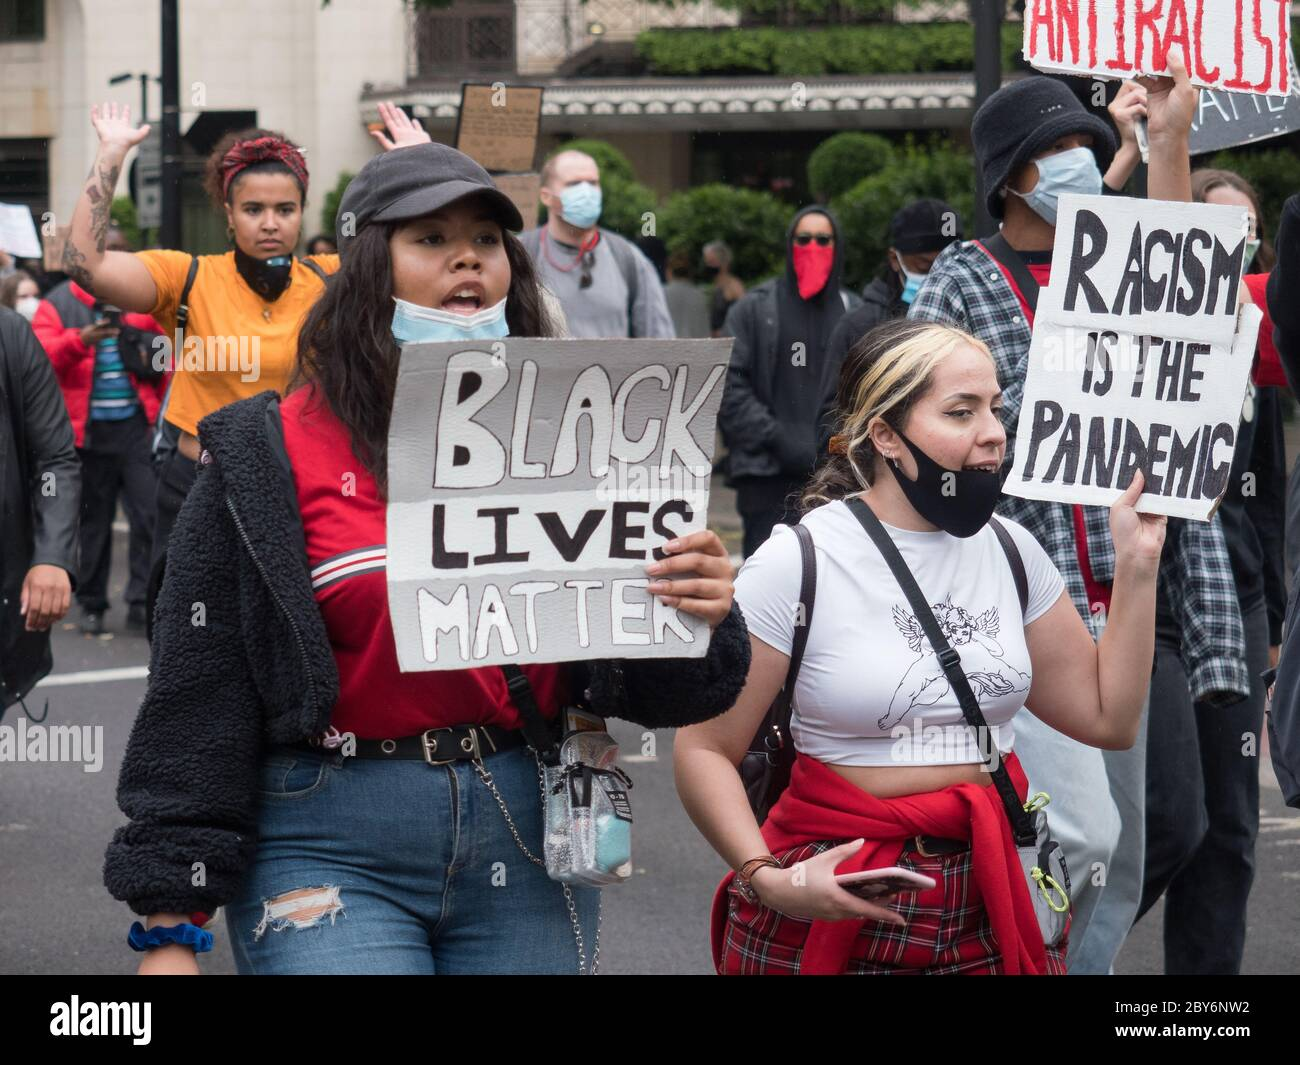 London, UK, 3 June 2020 - Black Lives Matter protesters marched from Hyde Park to Parliament following the death in custody of George Floyd. Stock Photo